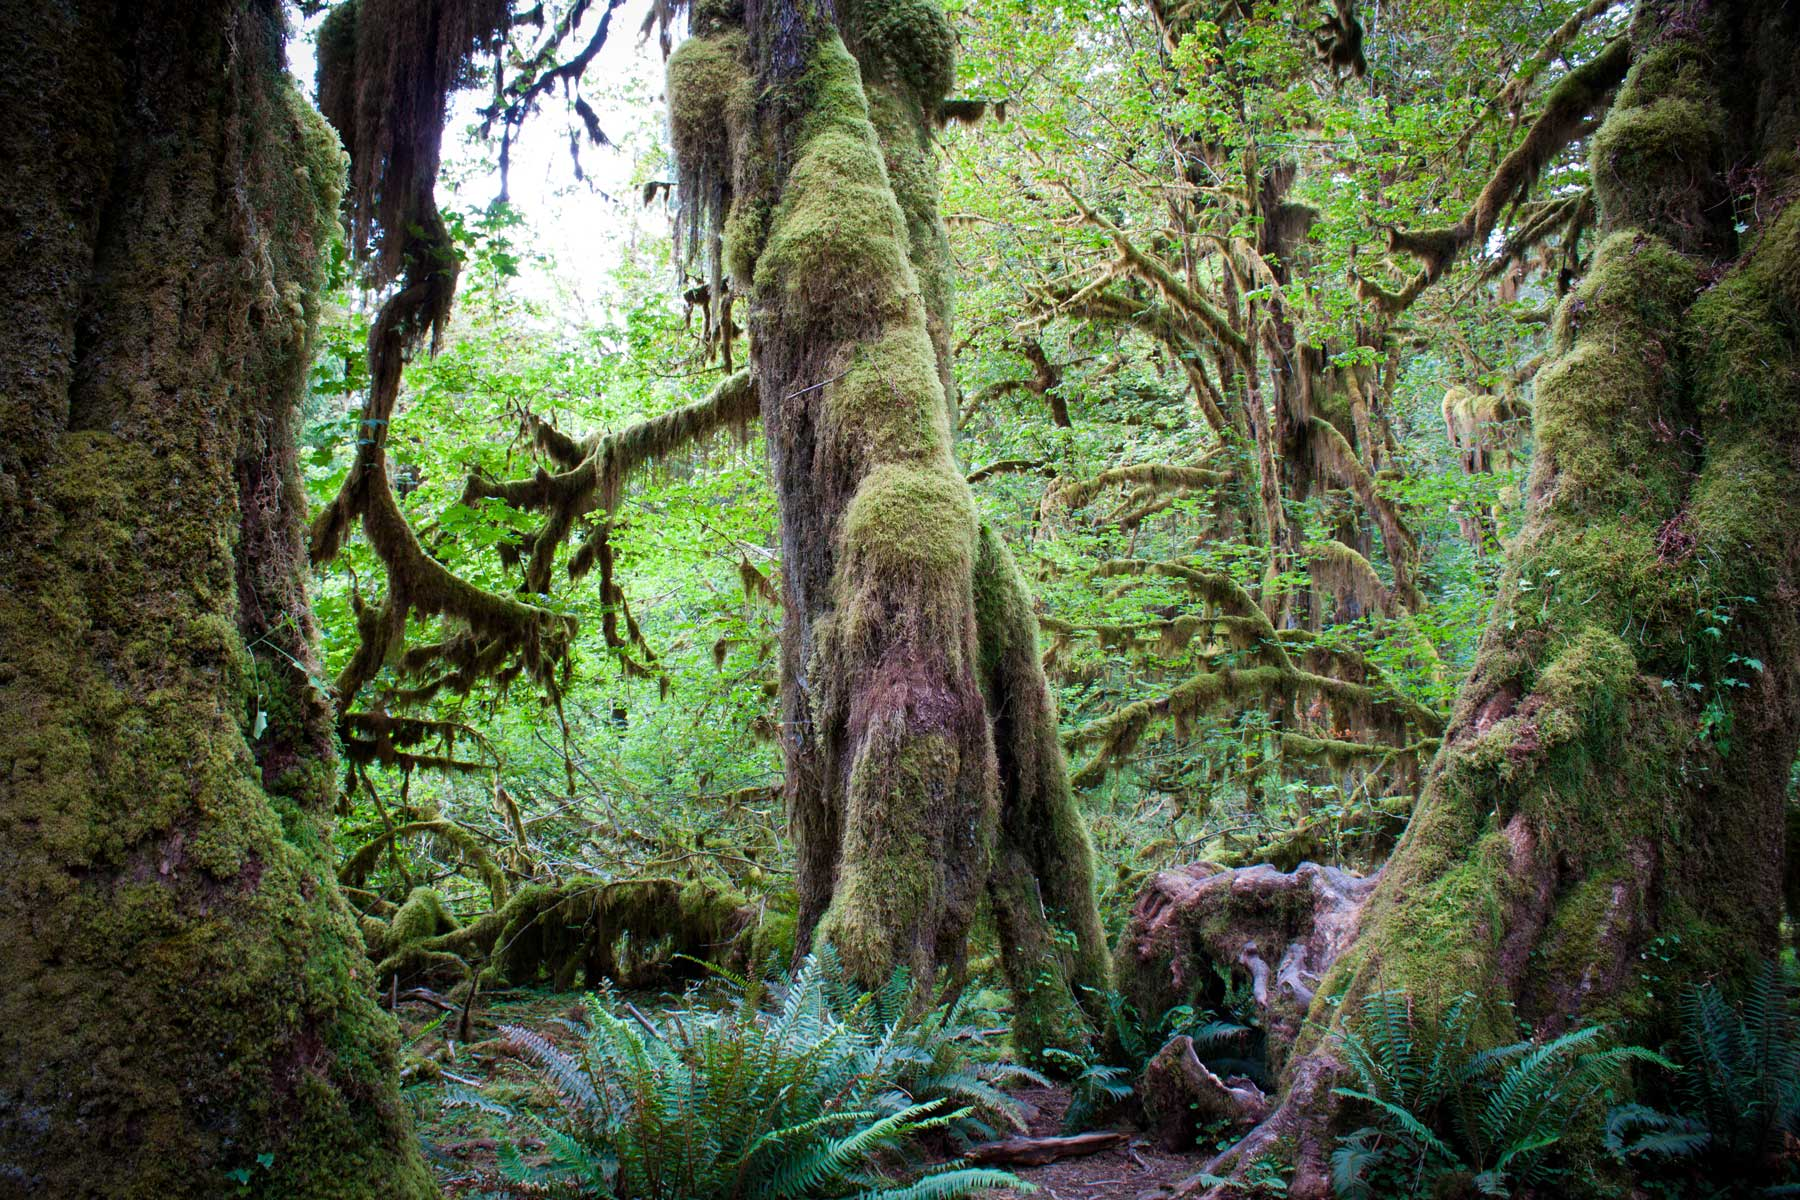 Hall of Mosses on helppo kävelyreitti Hoh'n sademetsässä Olympic National Parkissa. (c) Abhinaba Basu/Flickr.com, CC 2.0